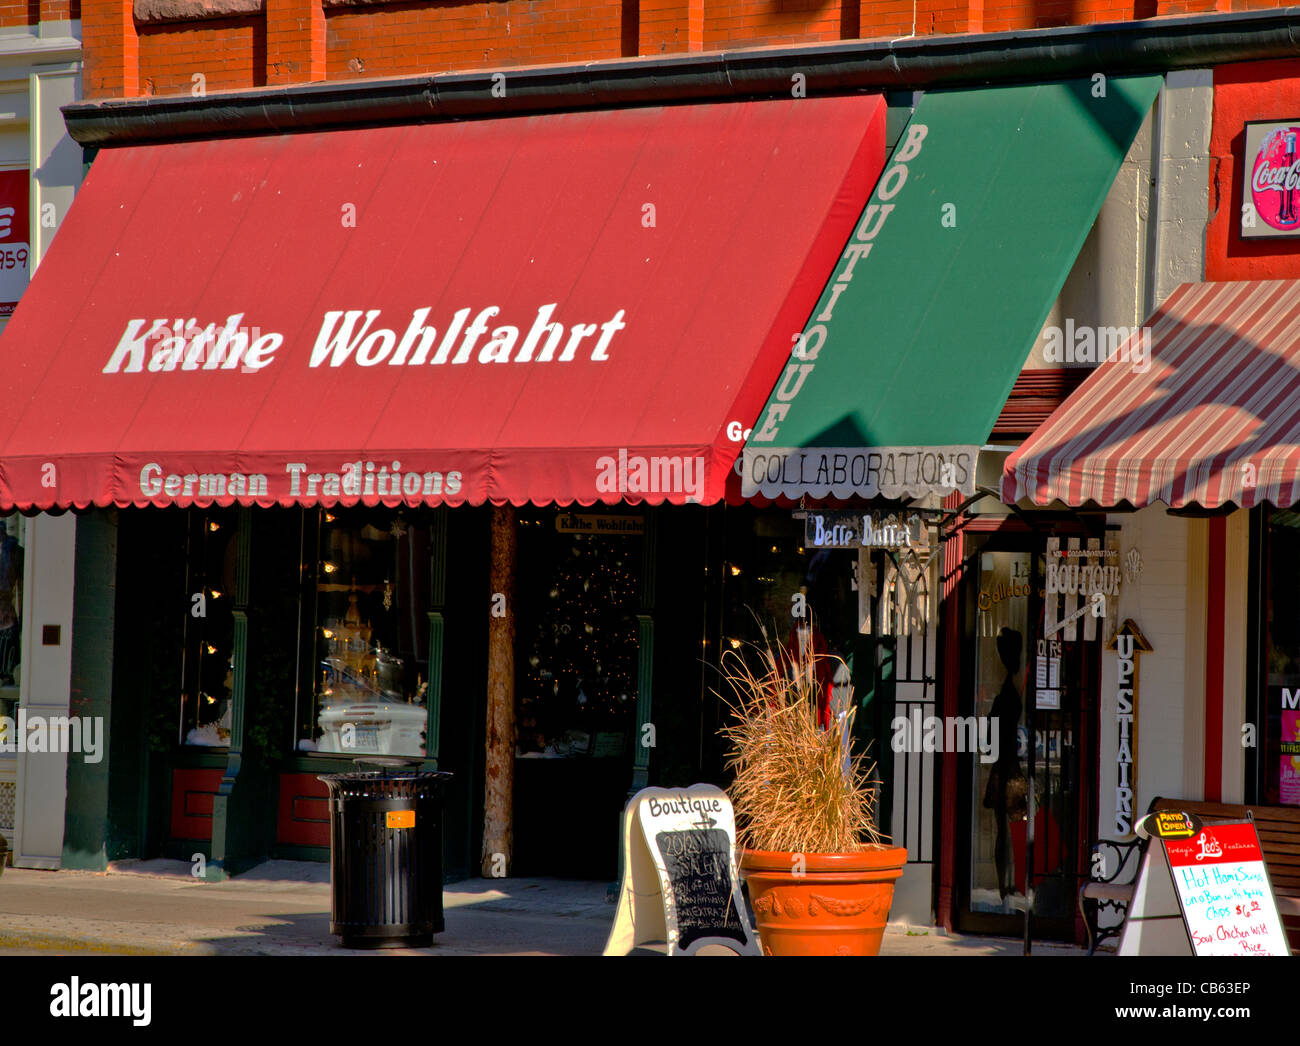 Kathe Wohlfahrt des traditions allemandes shop Stillwater, Minnesota Photo Stock